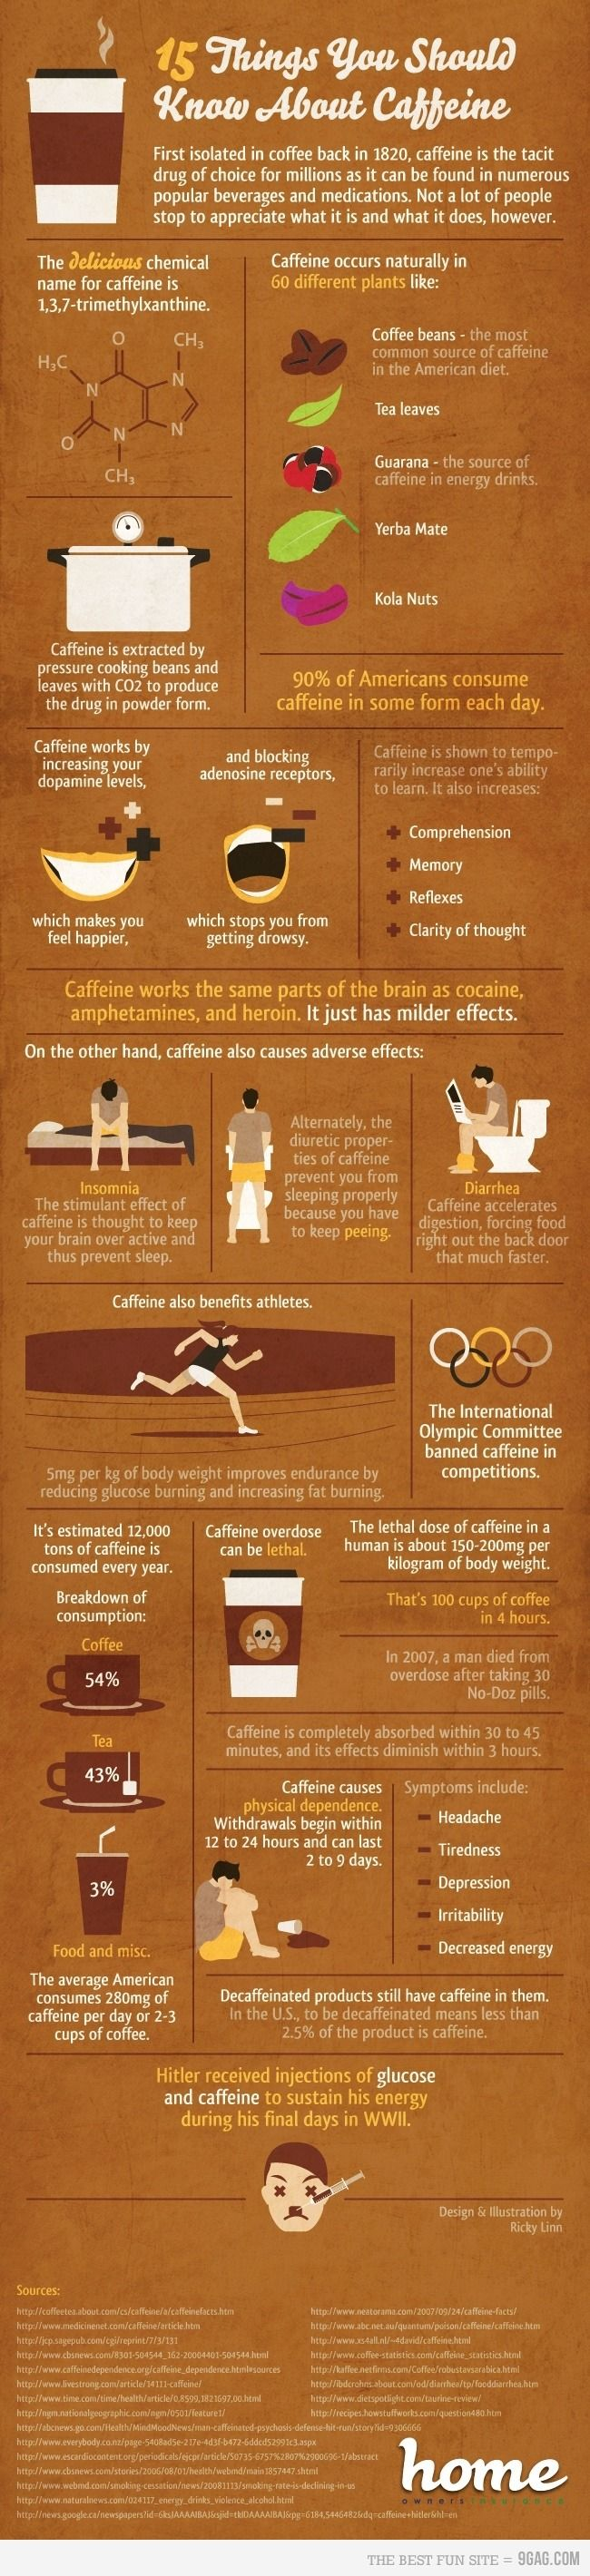 Fascinating infographic on caffeine. I did not know that it increased dopamine levels!